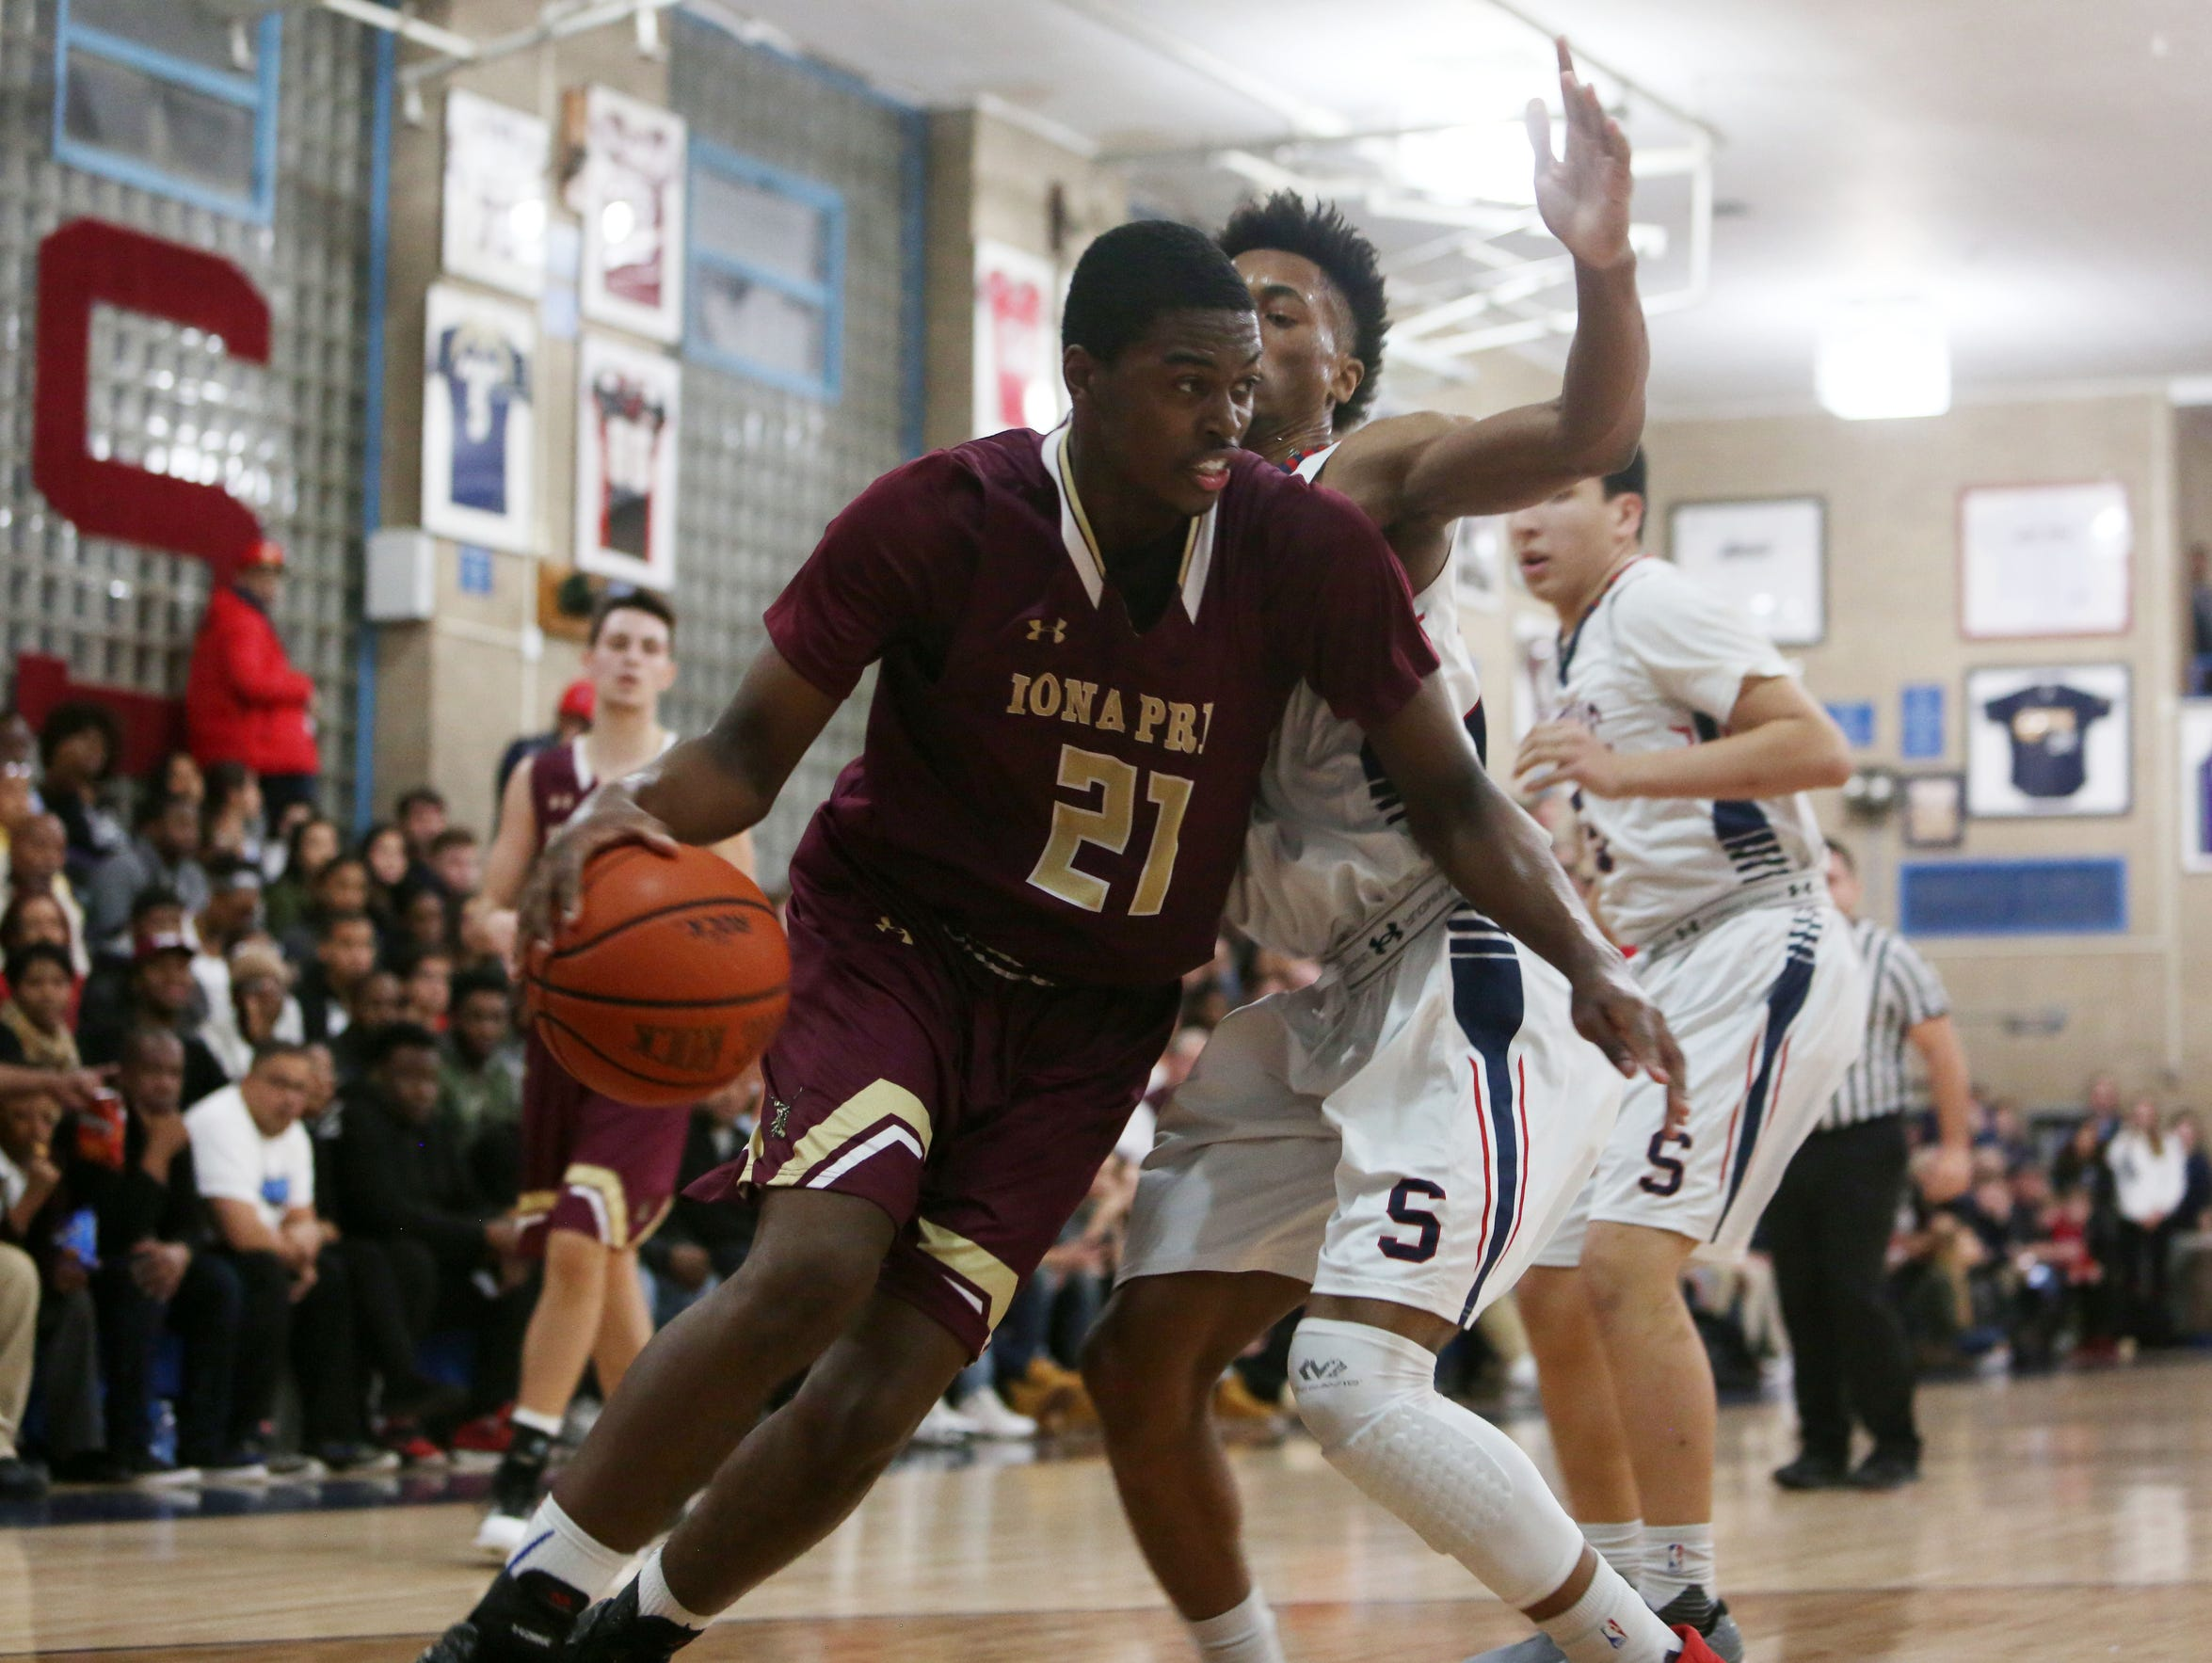 Stepinac defeated Iona 55-50 in basketball acton at